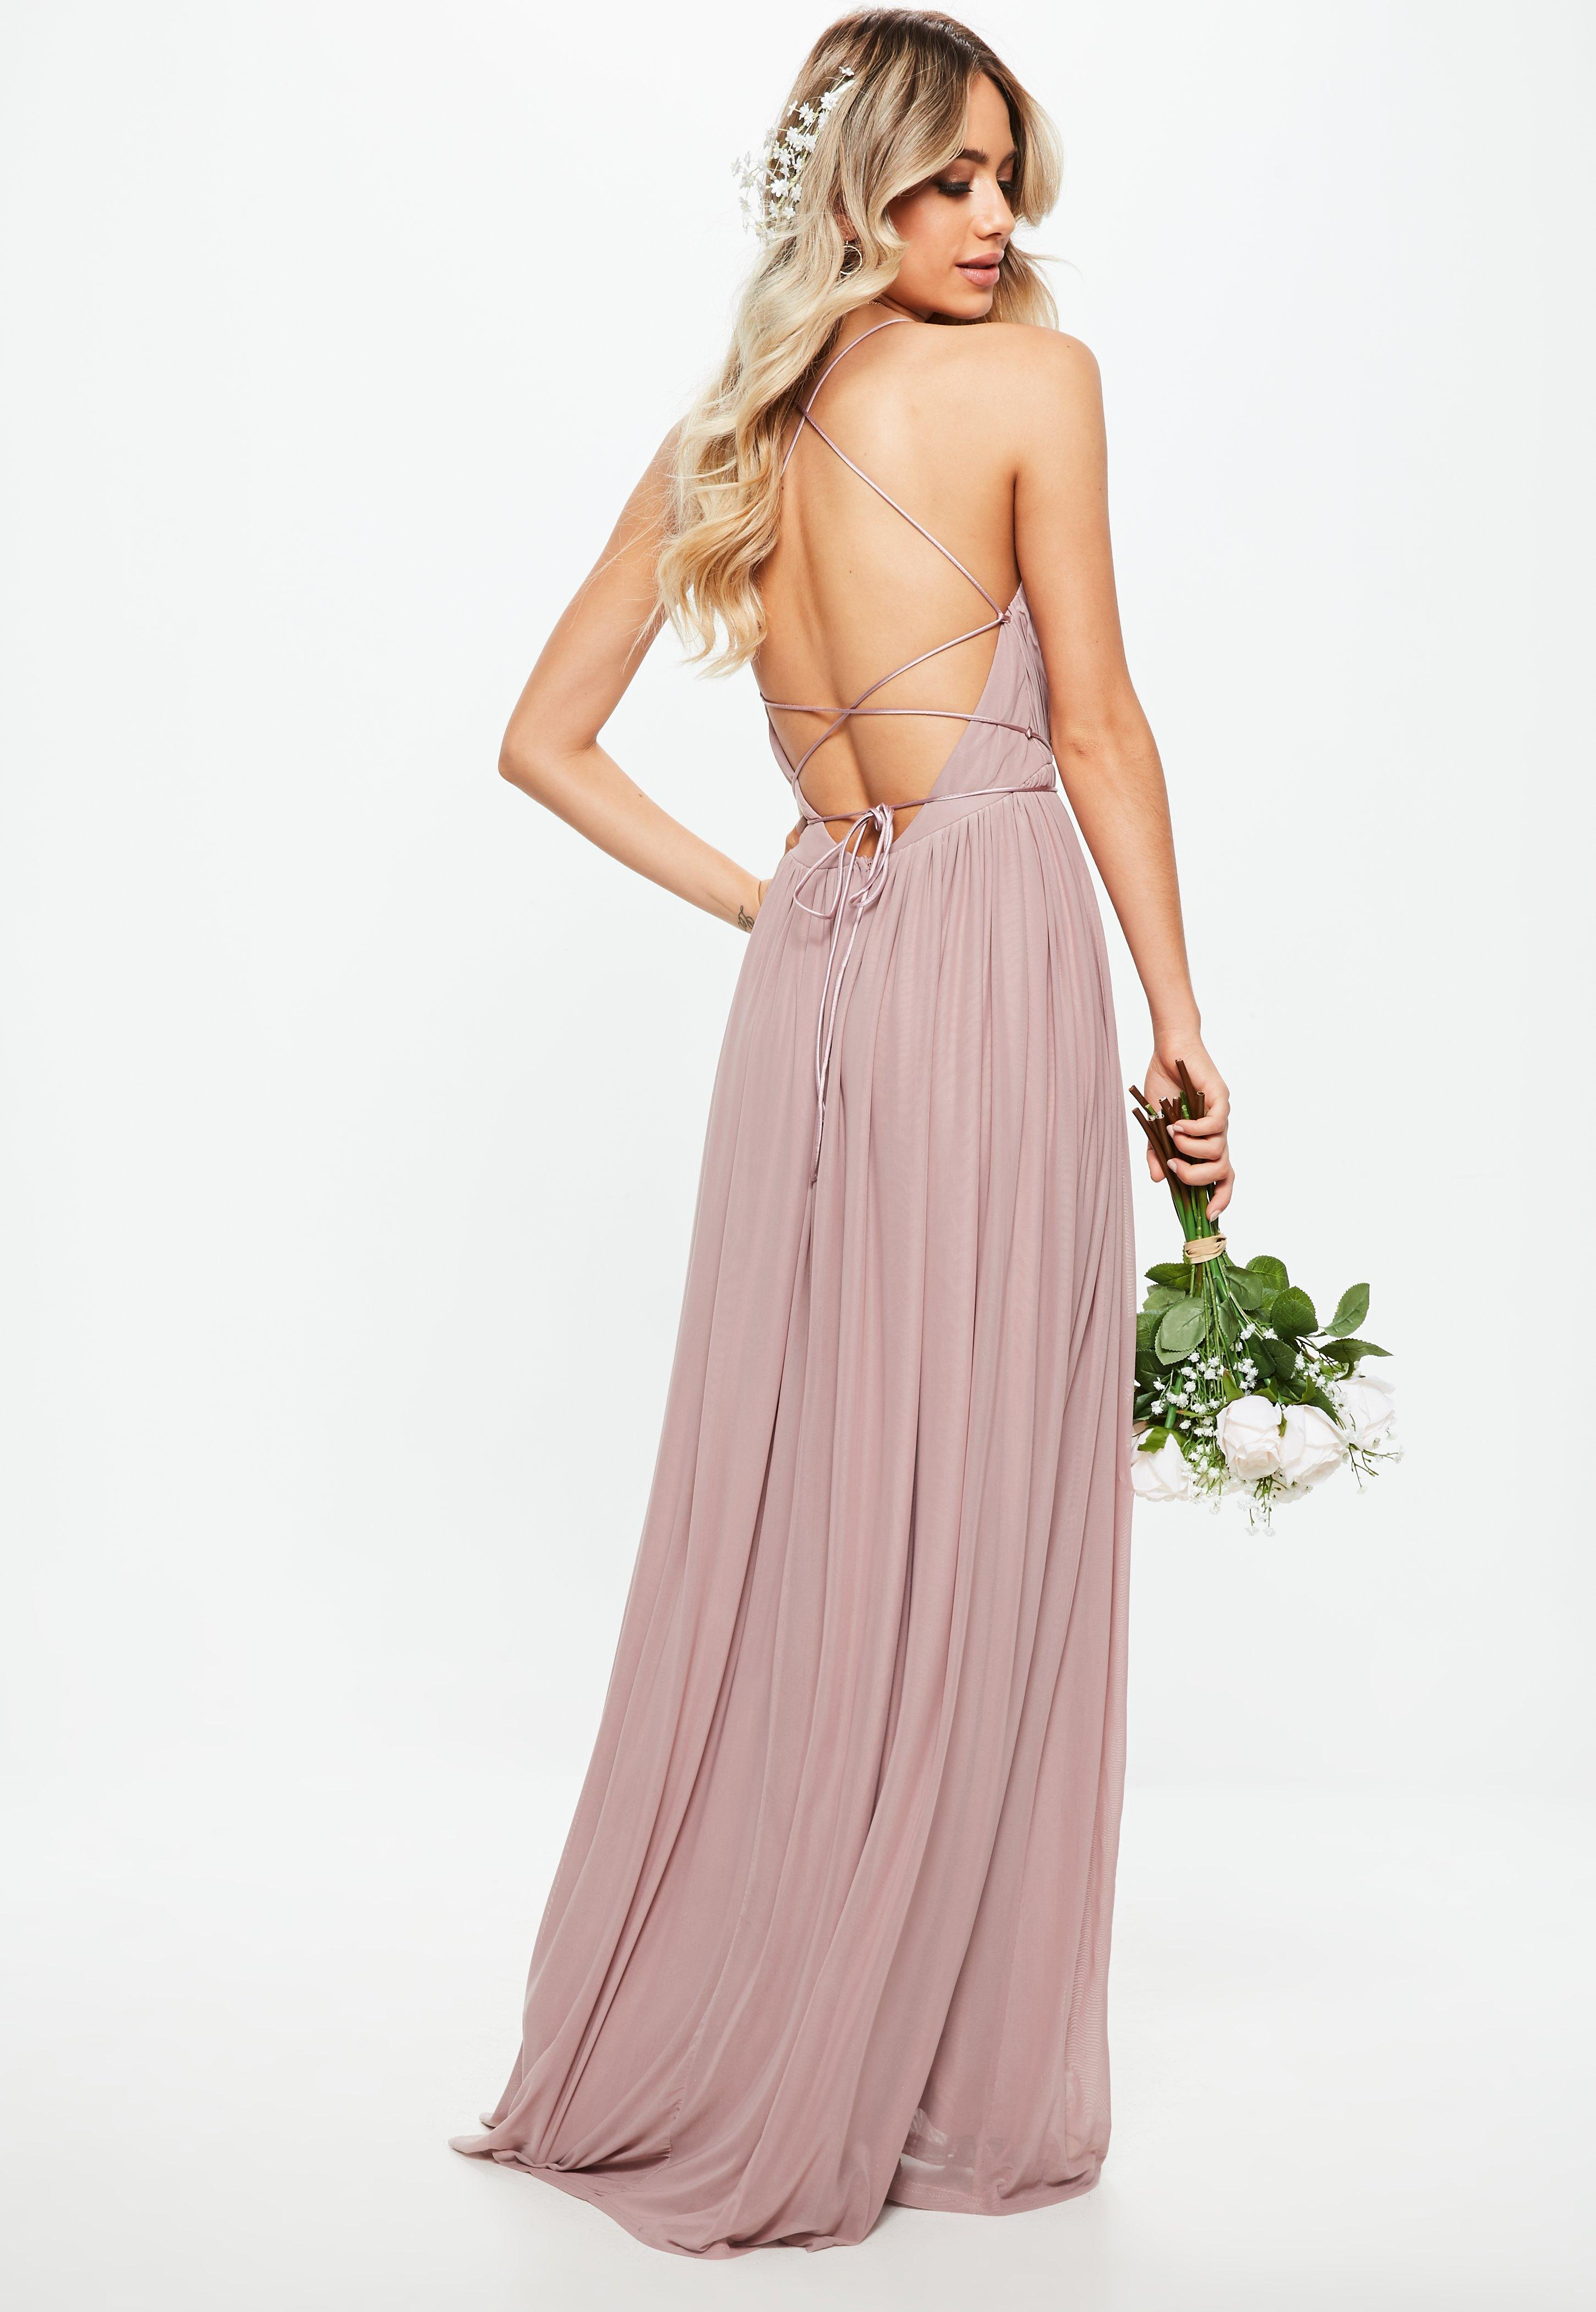 Bridesmaid Dresses | Maid of Honour Dresses - Missguided